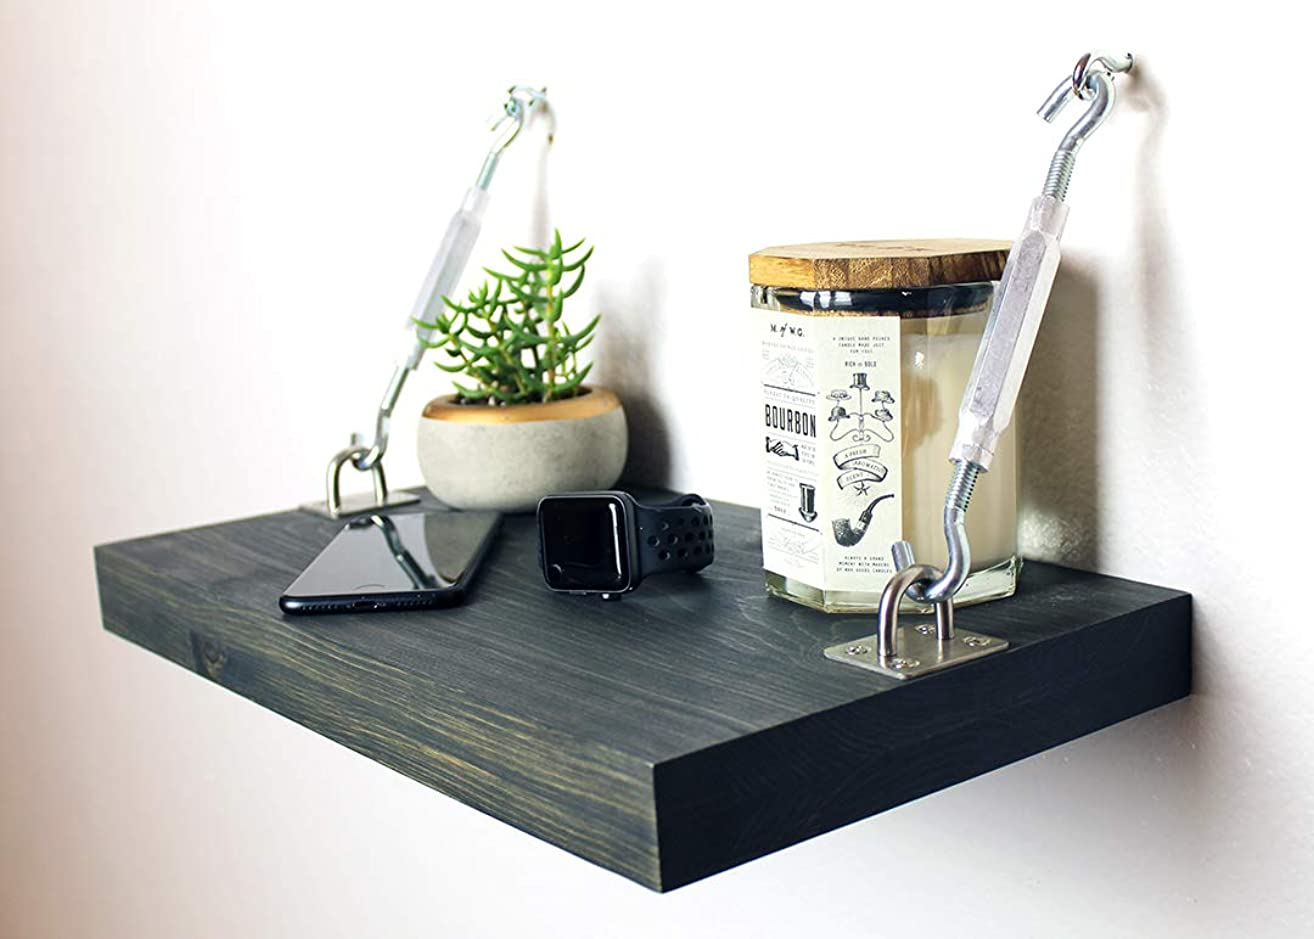 Floating Modern Bedroom Nightstands with Industrial Turnbuckles - Great For Small Spaces